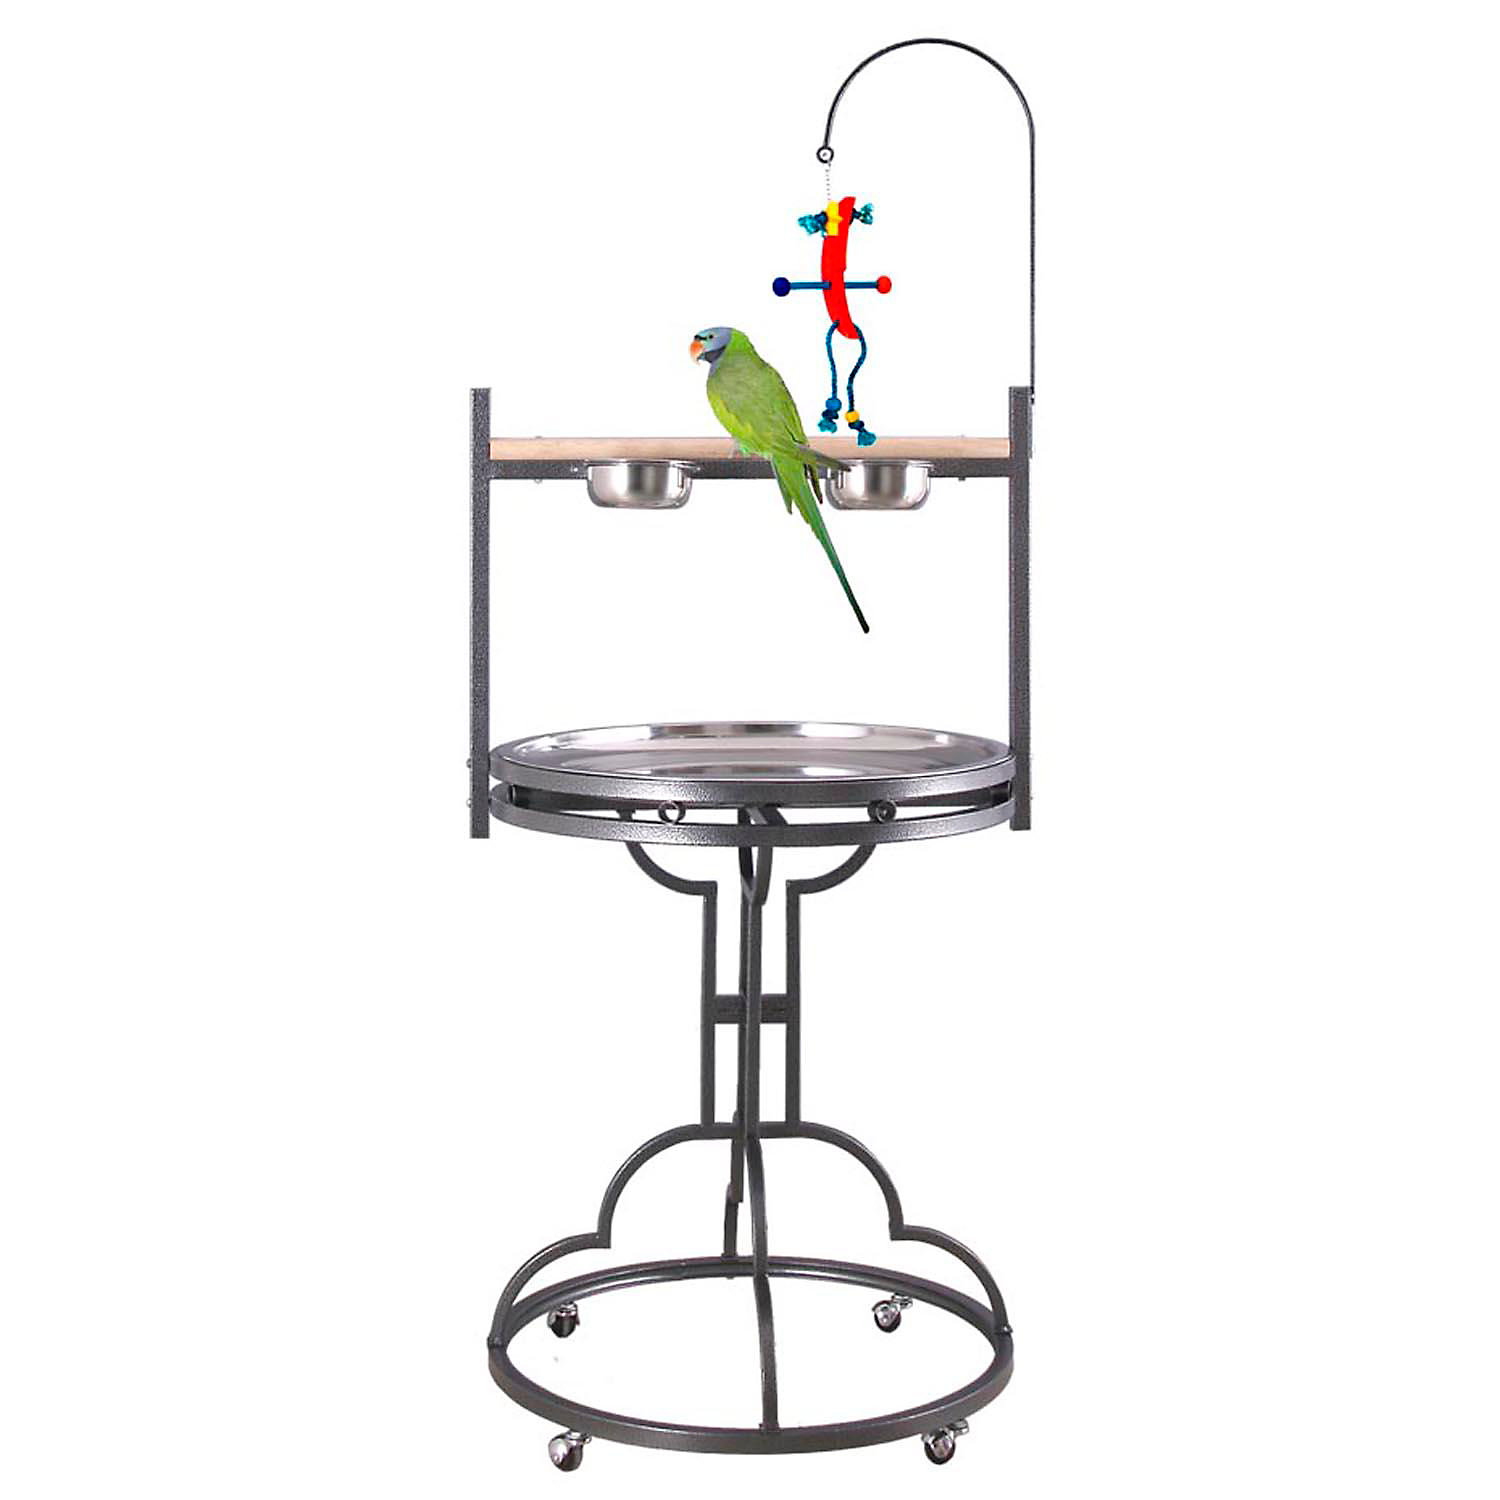 Hq Black Play Stand With Stainless Steel Tray 68 H X 28 Diameter